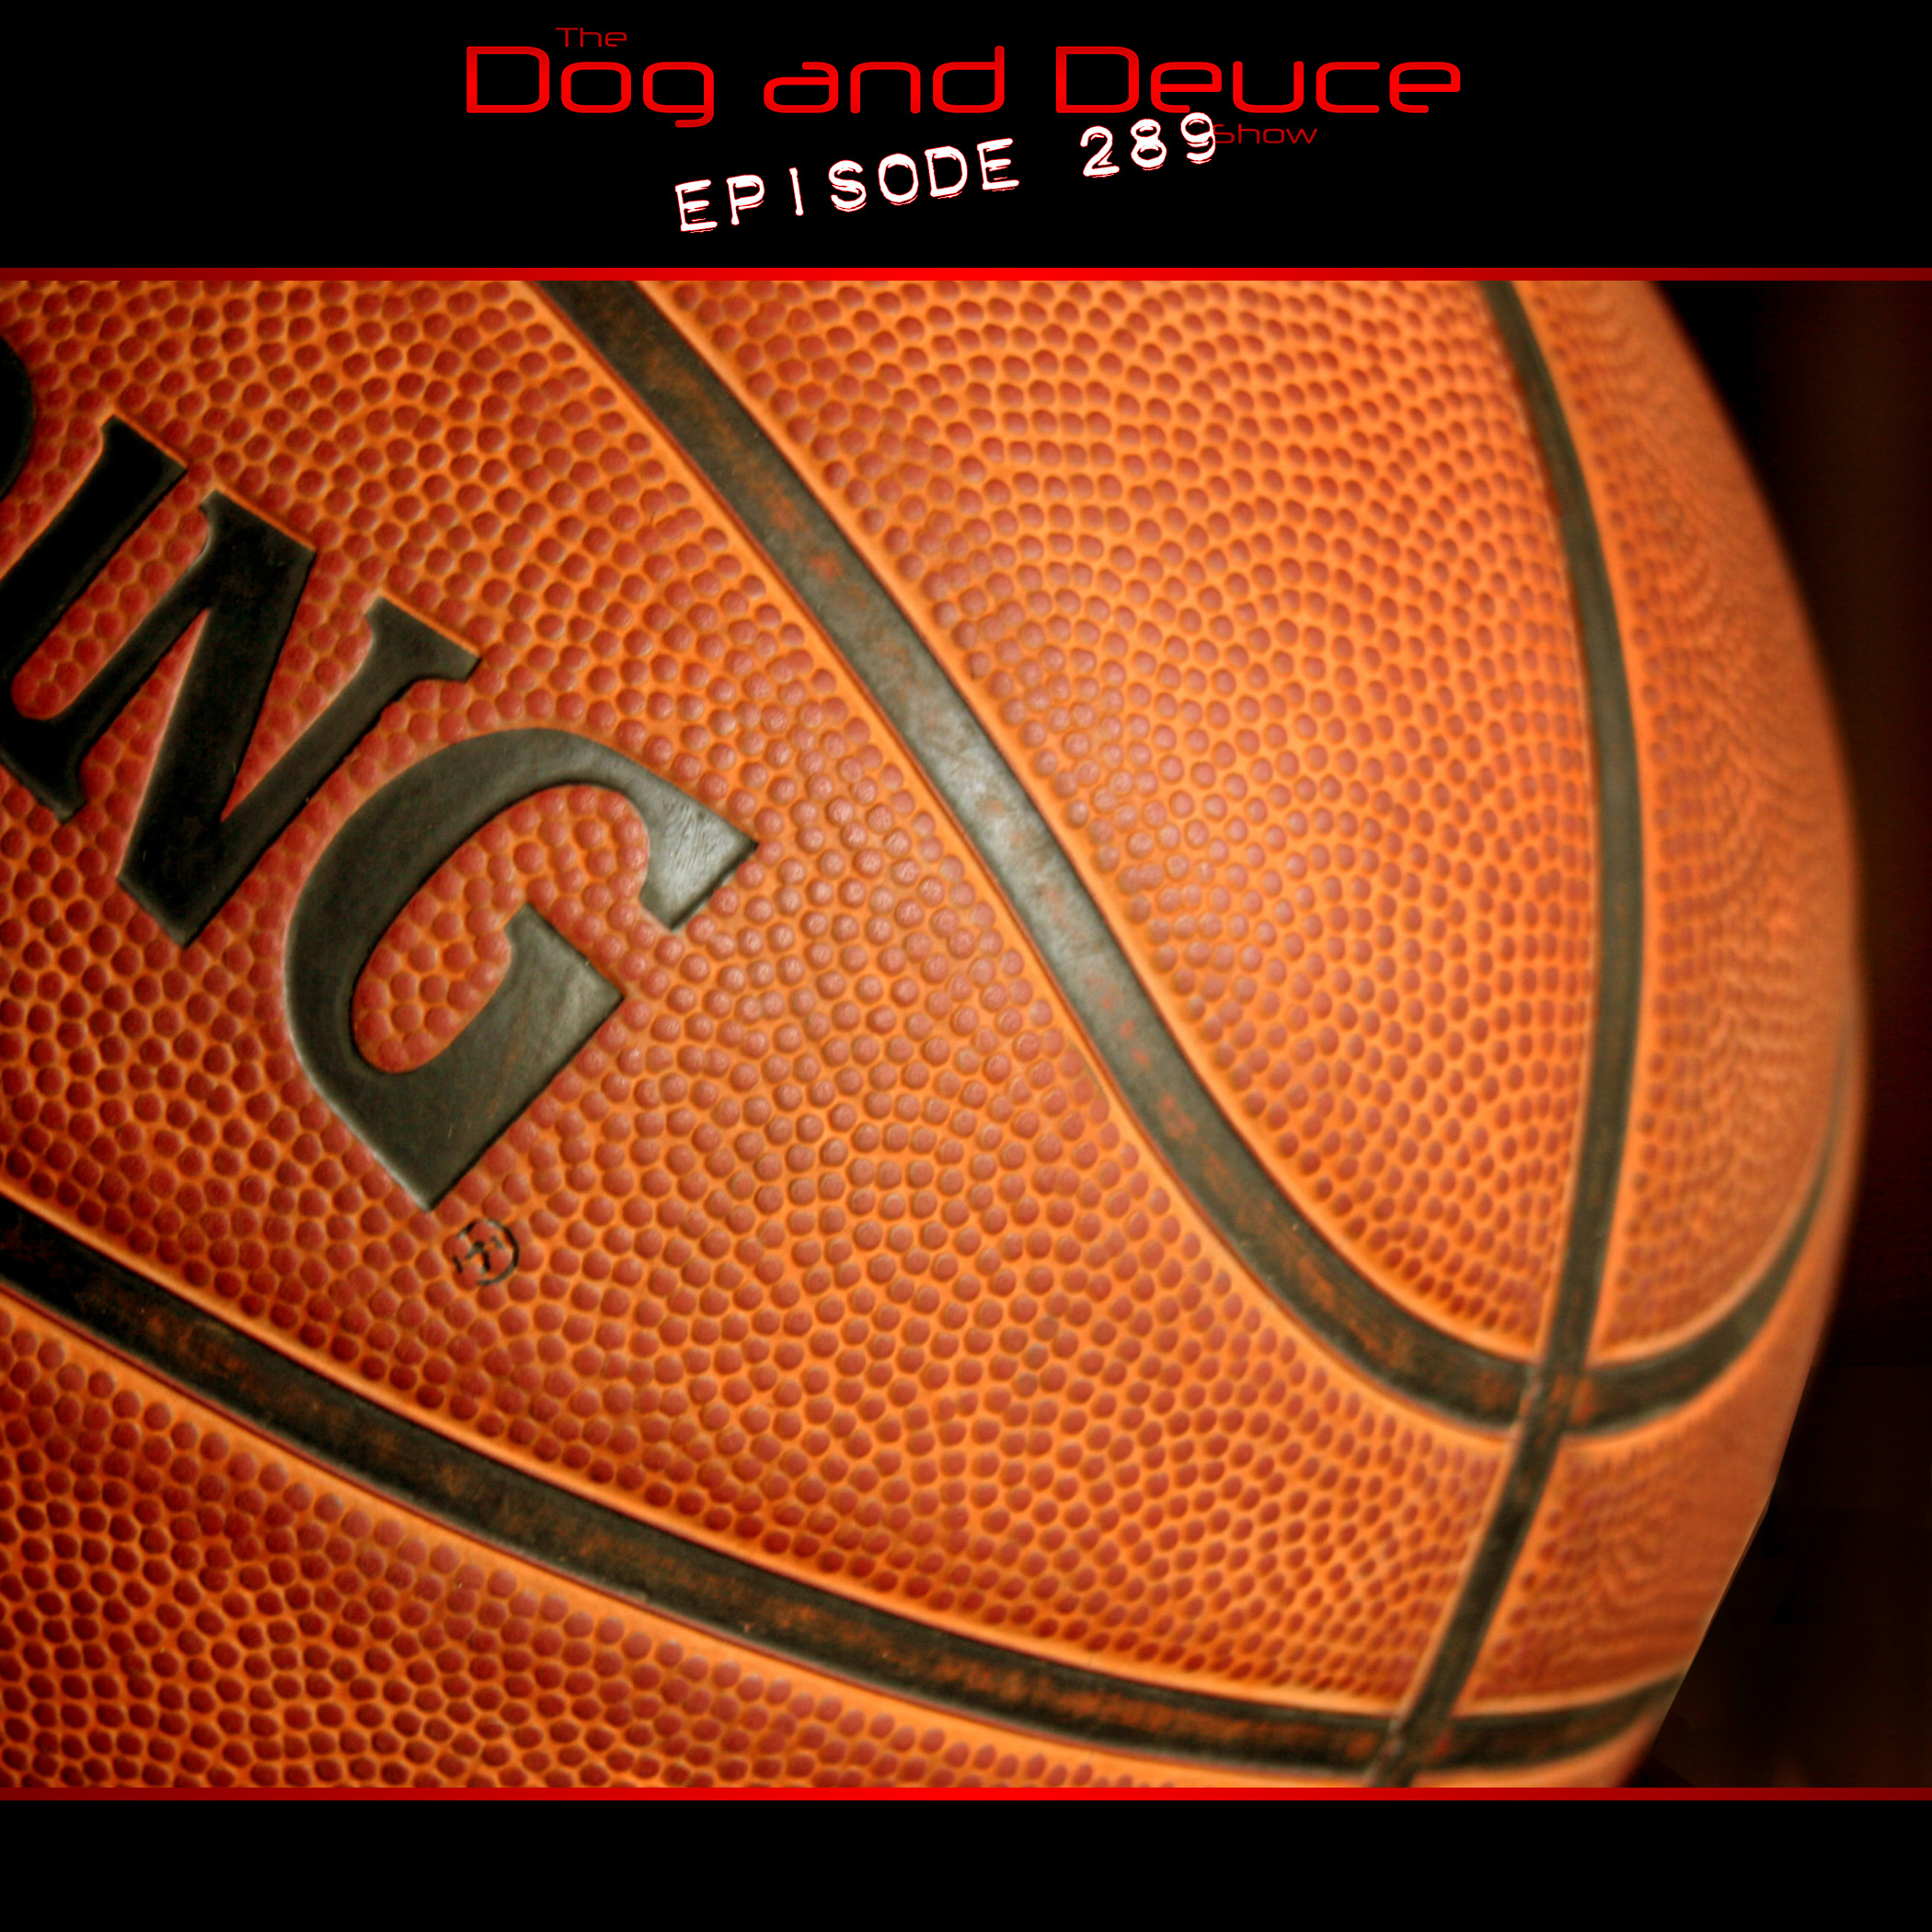 Nba Finals Espn Enables Magic Johnson The Most Disappointing Tv Series Endings Dog And Deuce 289